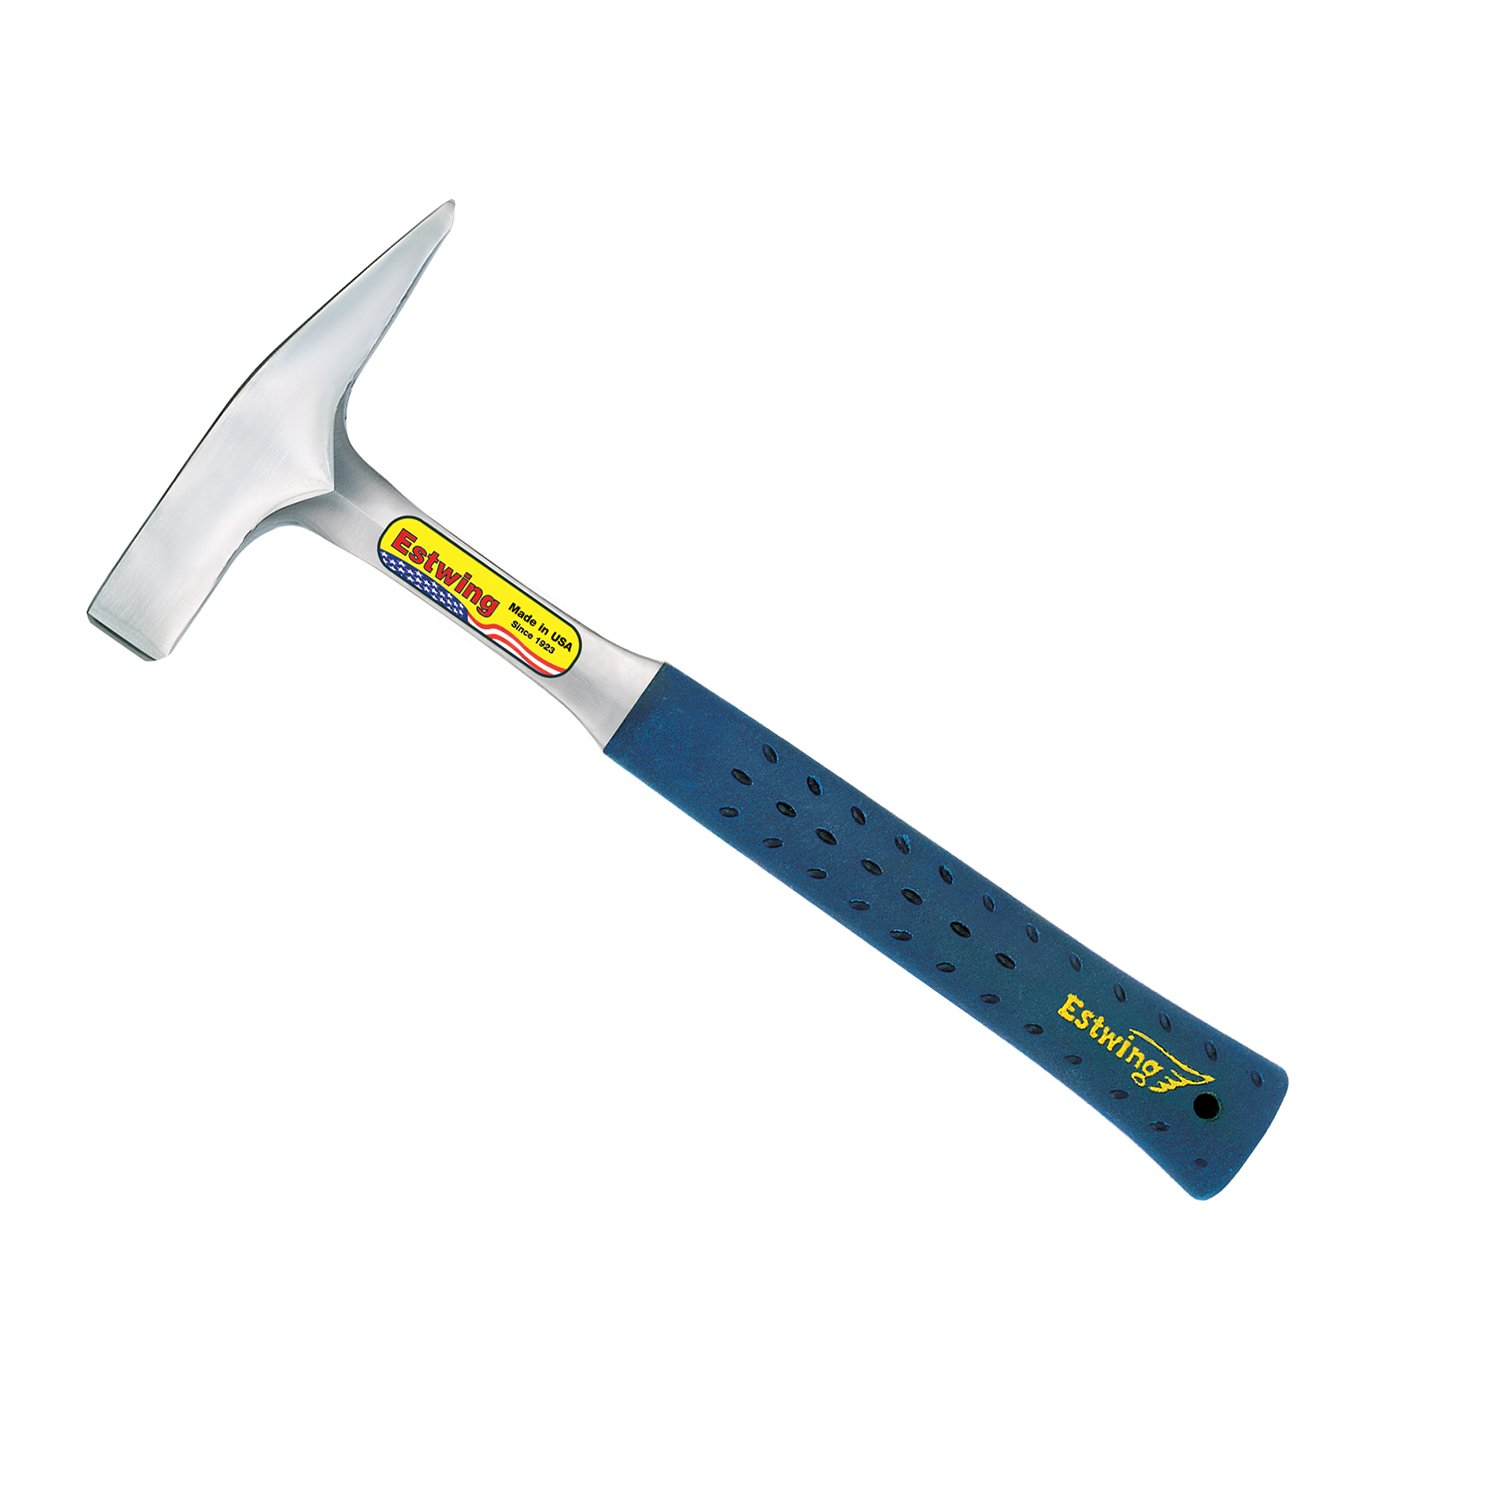 Estwing Tinner's Hammer - 12 oz Metalworking Tool with Forged Steel Construction & Shock Reduction Grip - T3-12